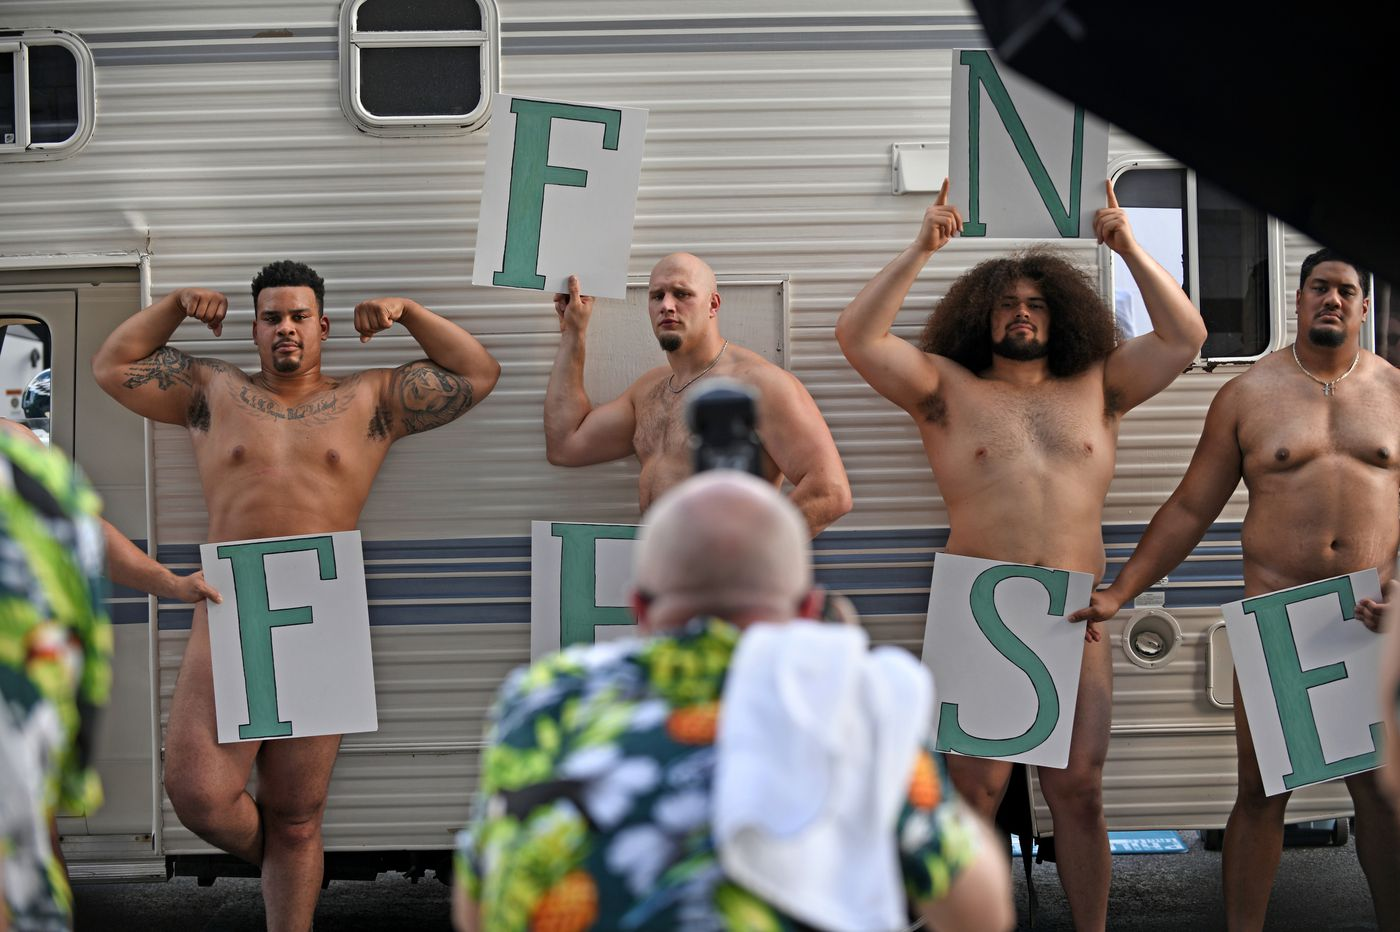 Eagles' offensive linemen showed more than their naked bodies to ESPN's readers | Mike Sielski